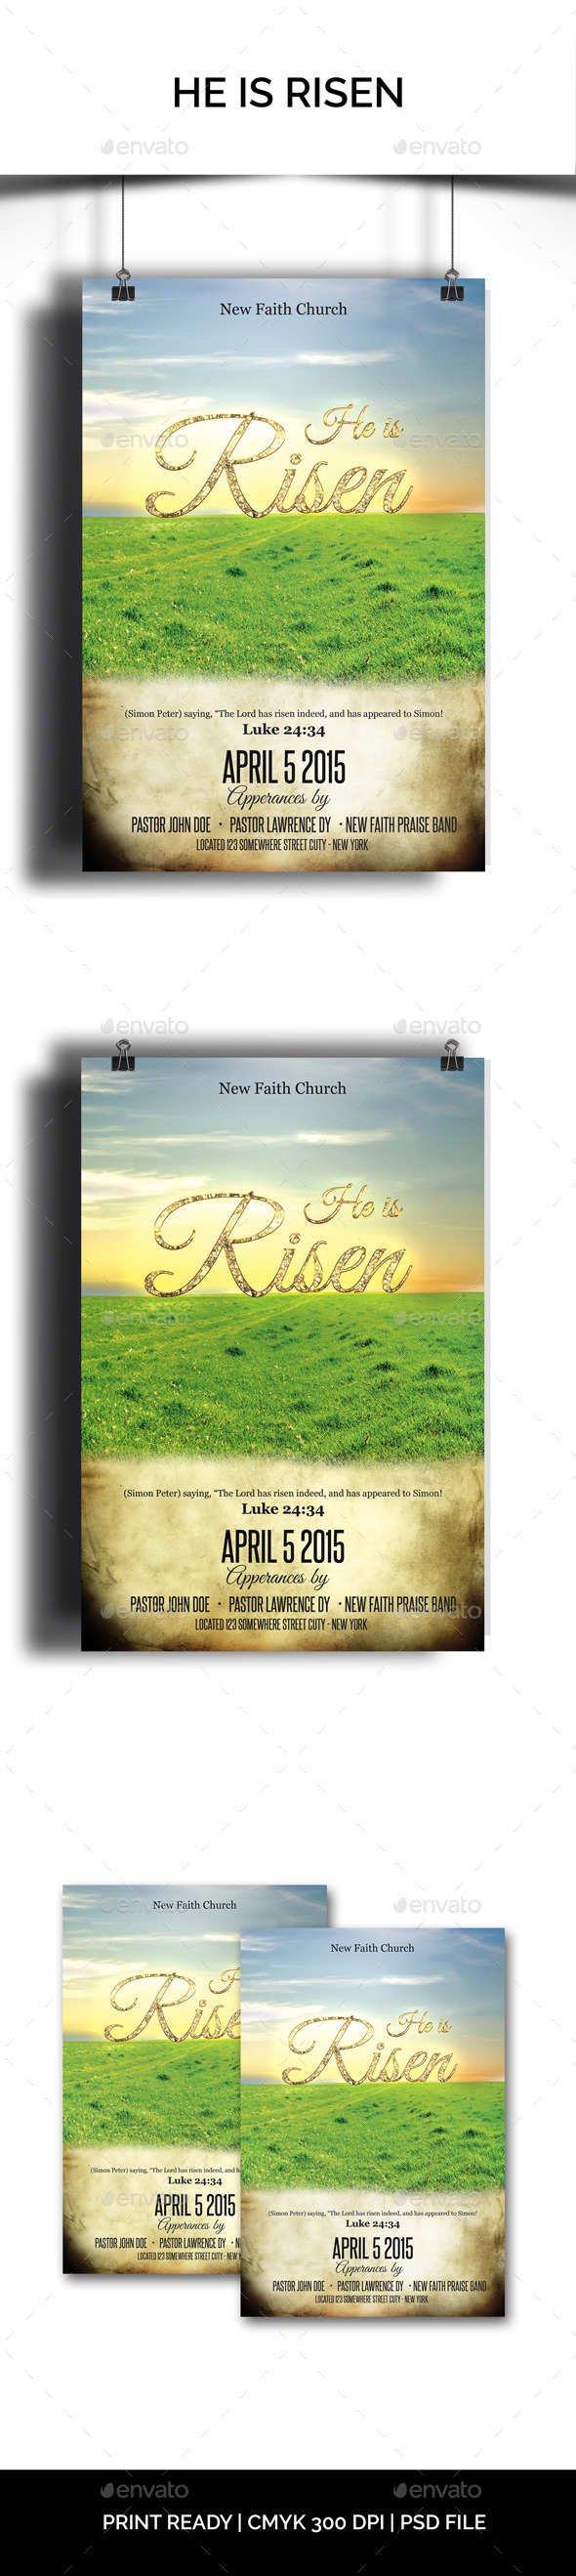 He is Risen Church Flyer - Church Flyers